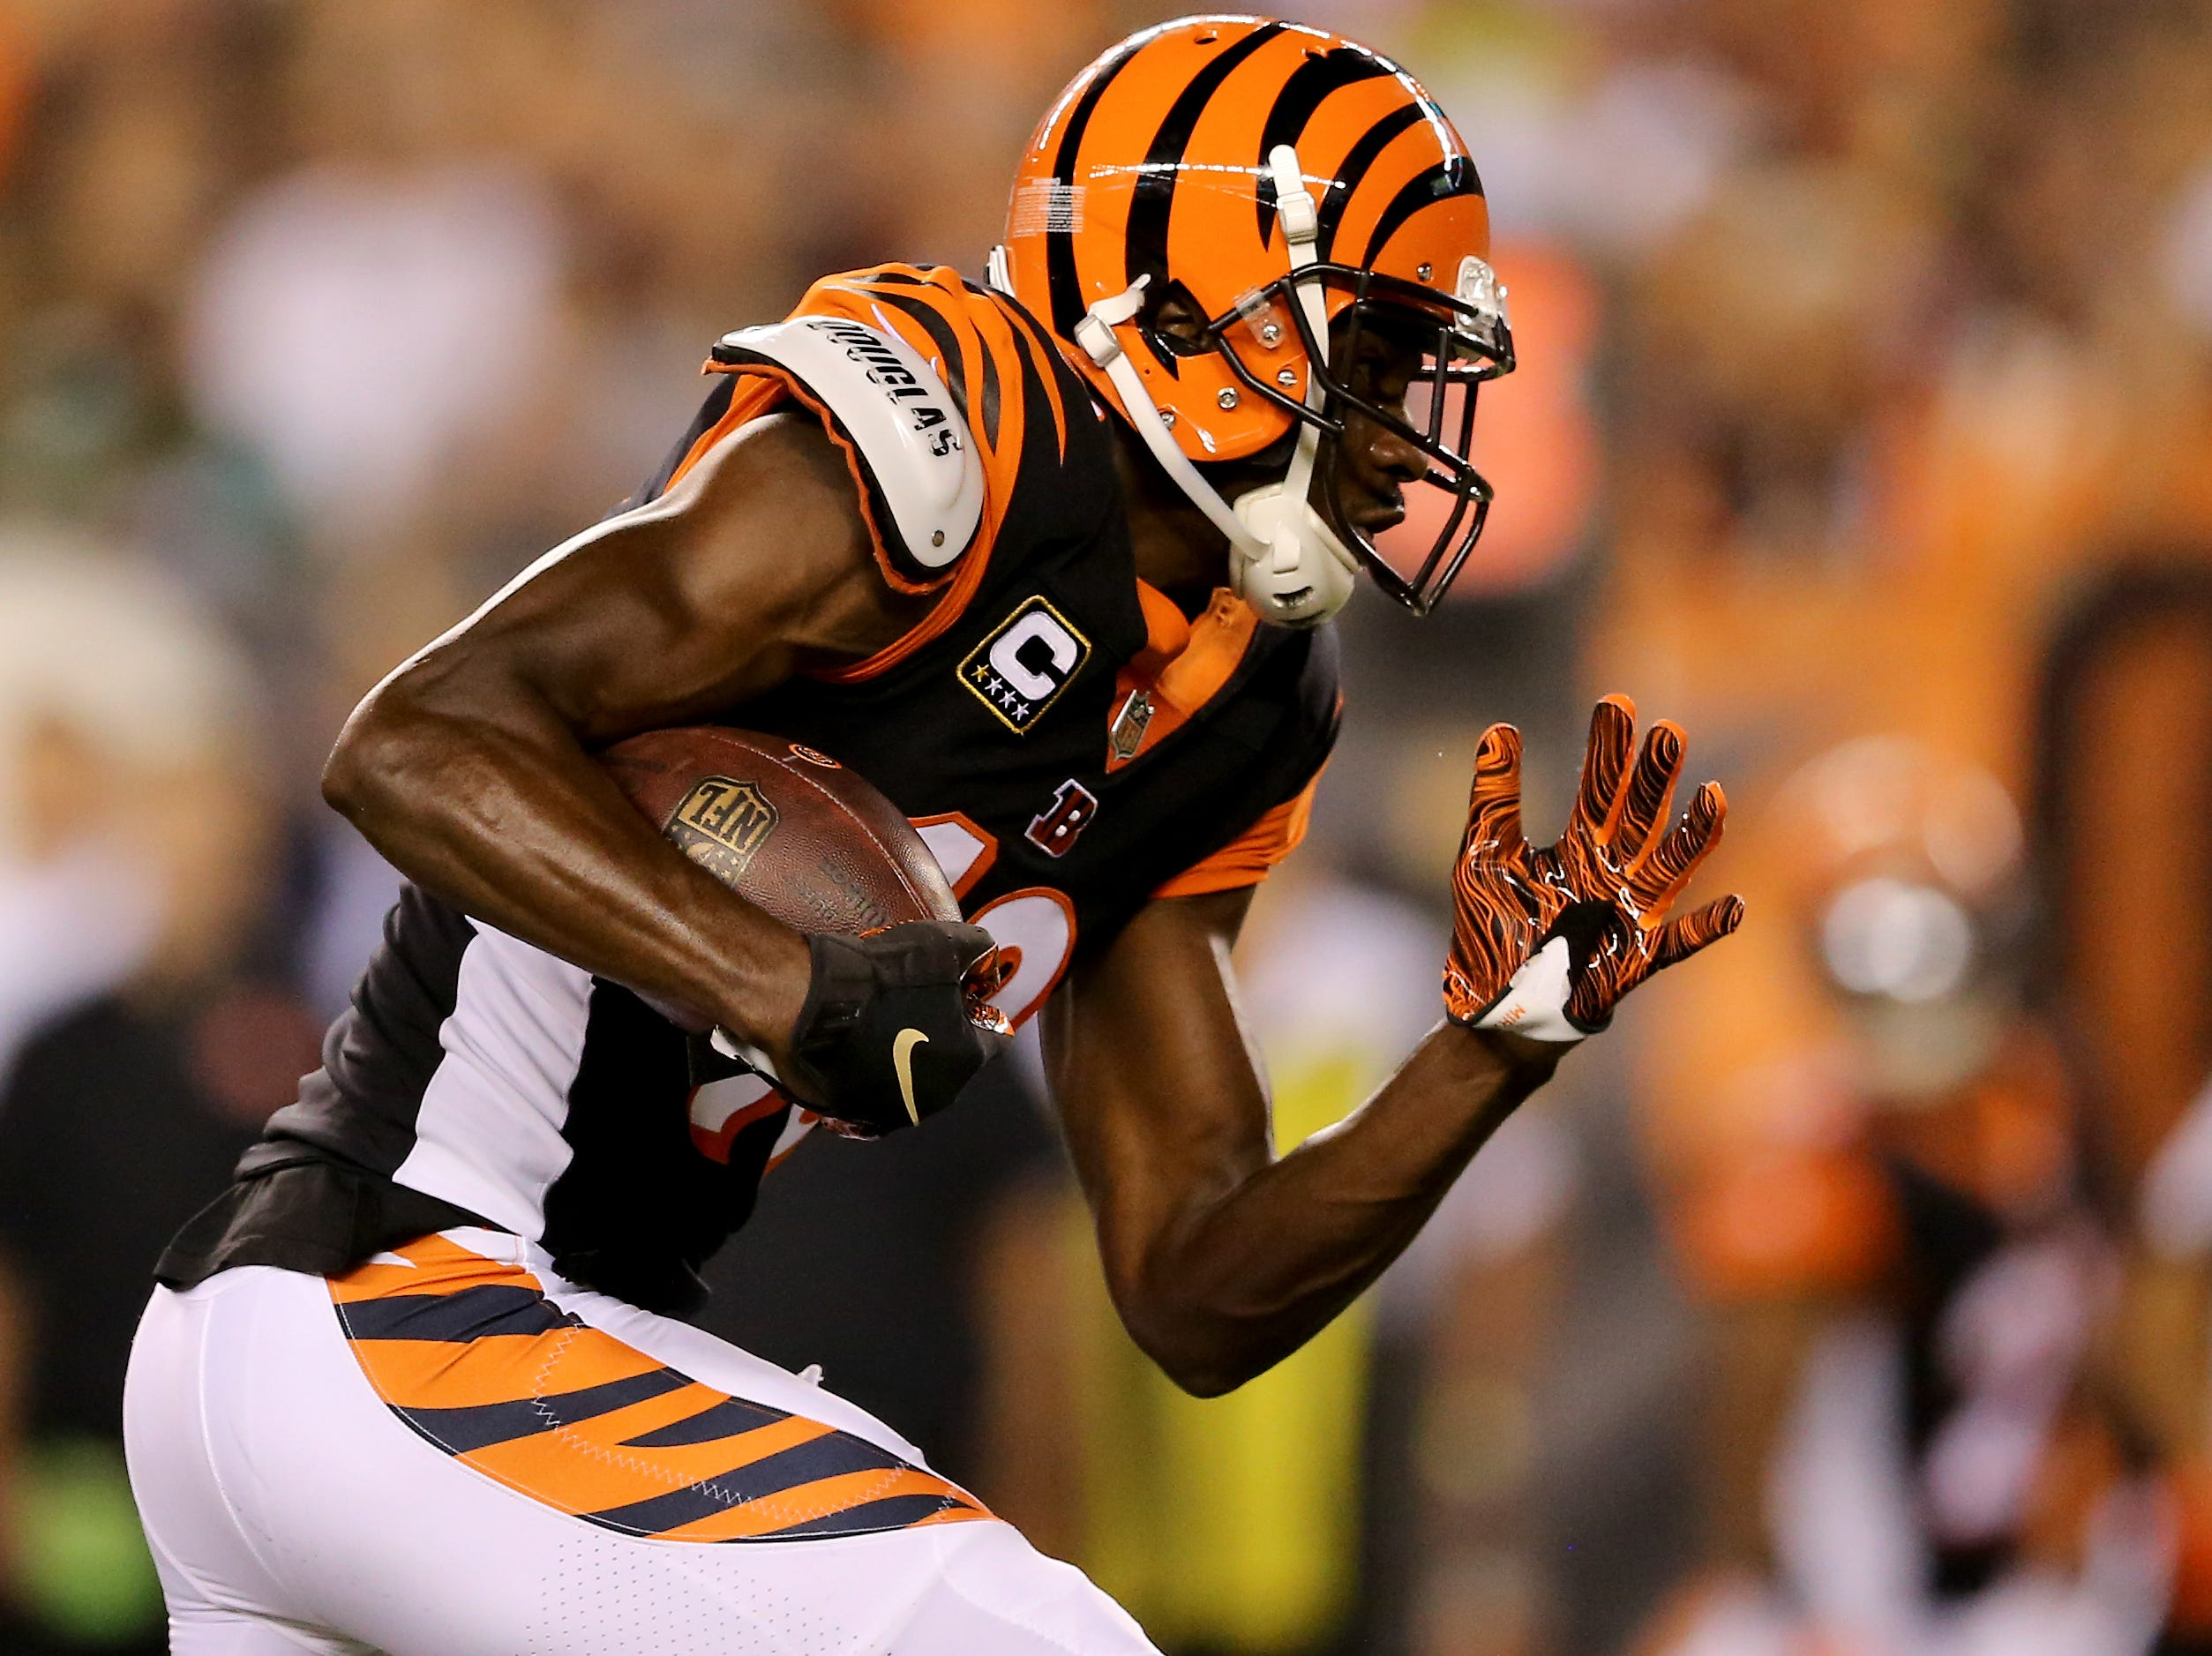 Cincinnati Bengals wide receiver A.J. Green (18) shakes off a defender on a touchdown catch and run in the first quarter during the Week 2 NFL football game between the Baltimore Ravens and the Cincinnati Bengals, Thursday, Sept. 13, 2018, Paul Brown Stadium in Cincinnati.